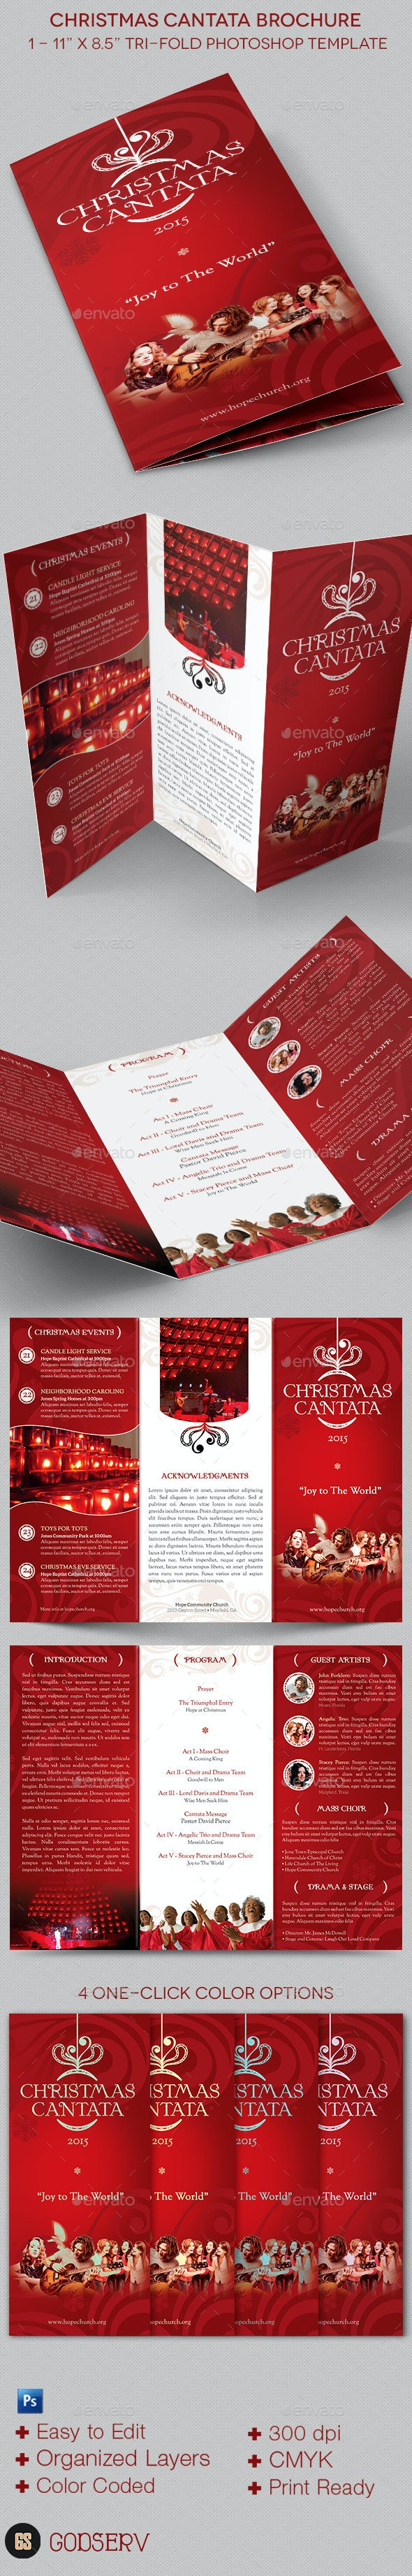 Christmas Cantata Brochure Template - Informational Brochures